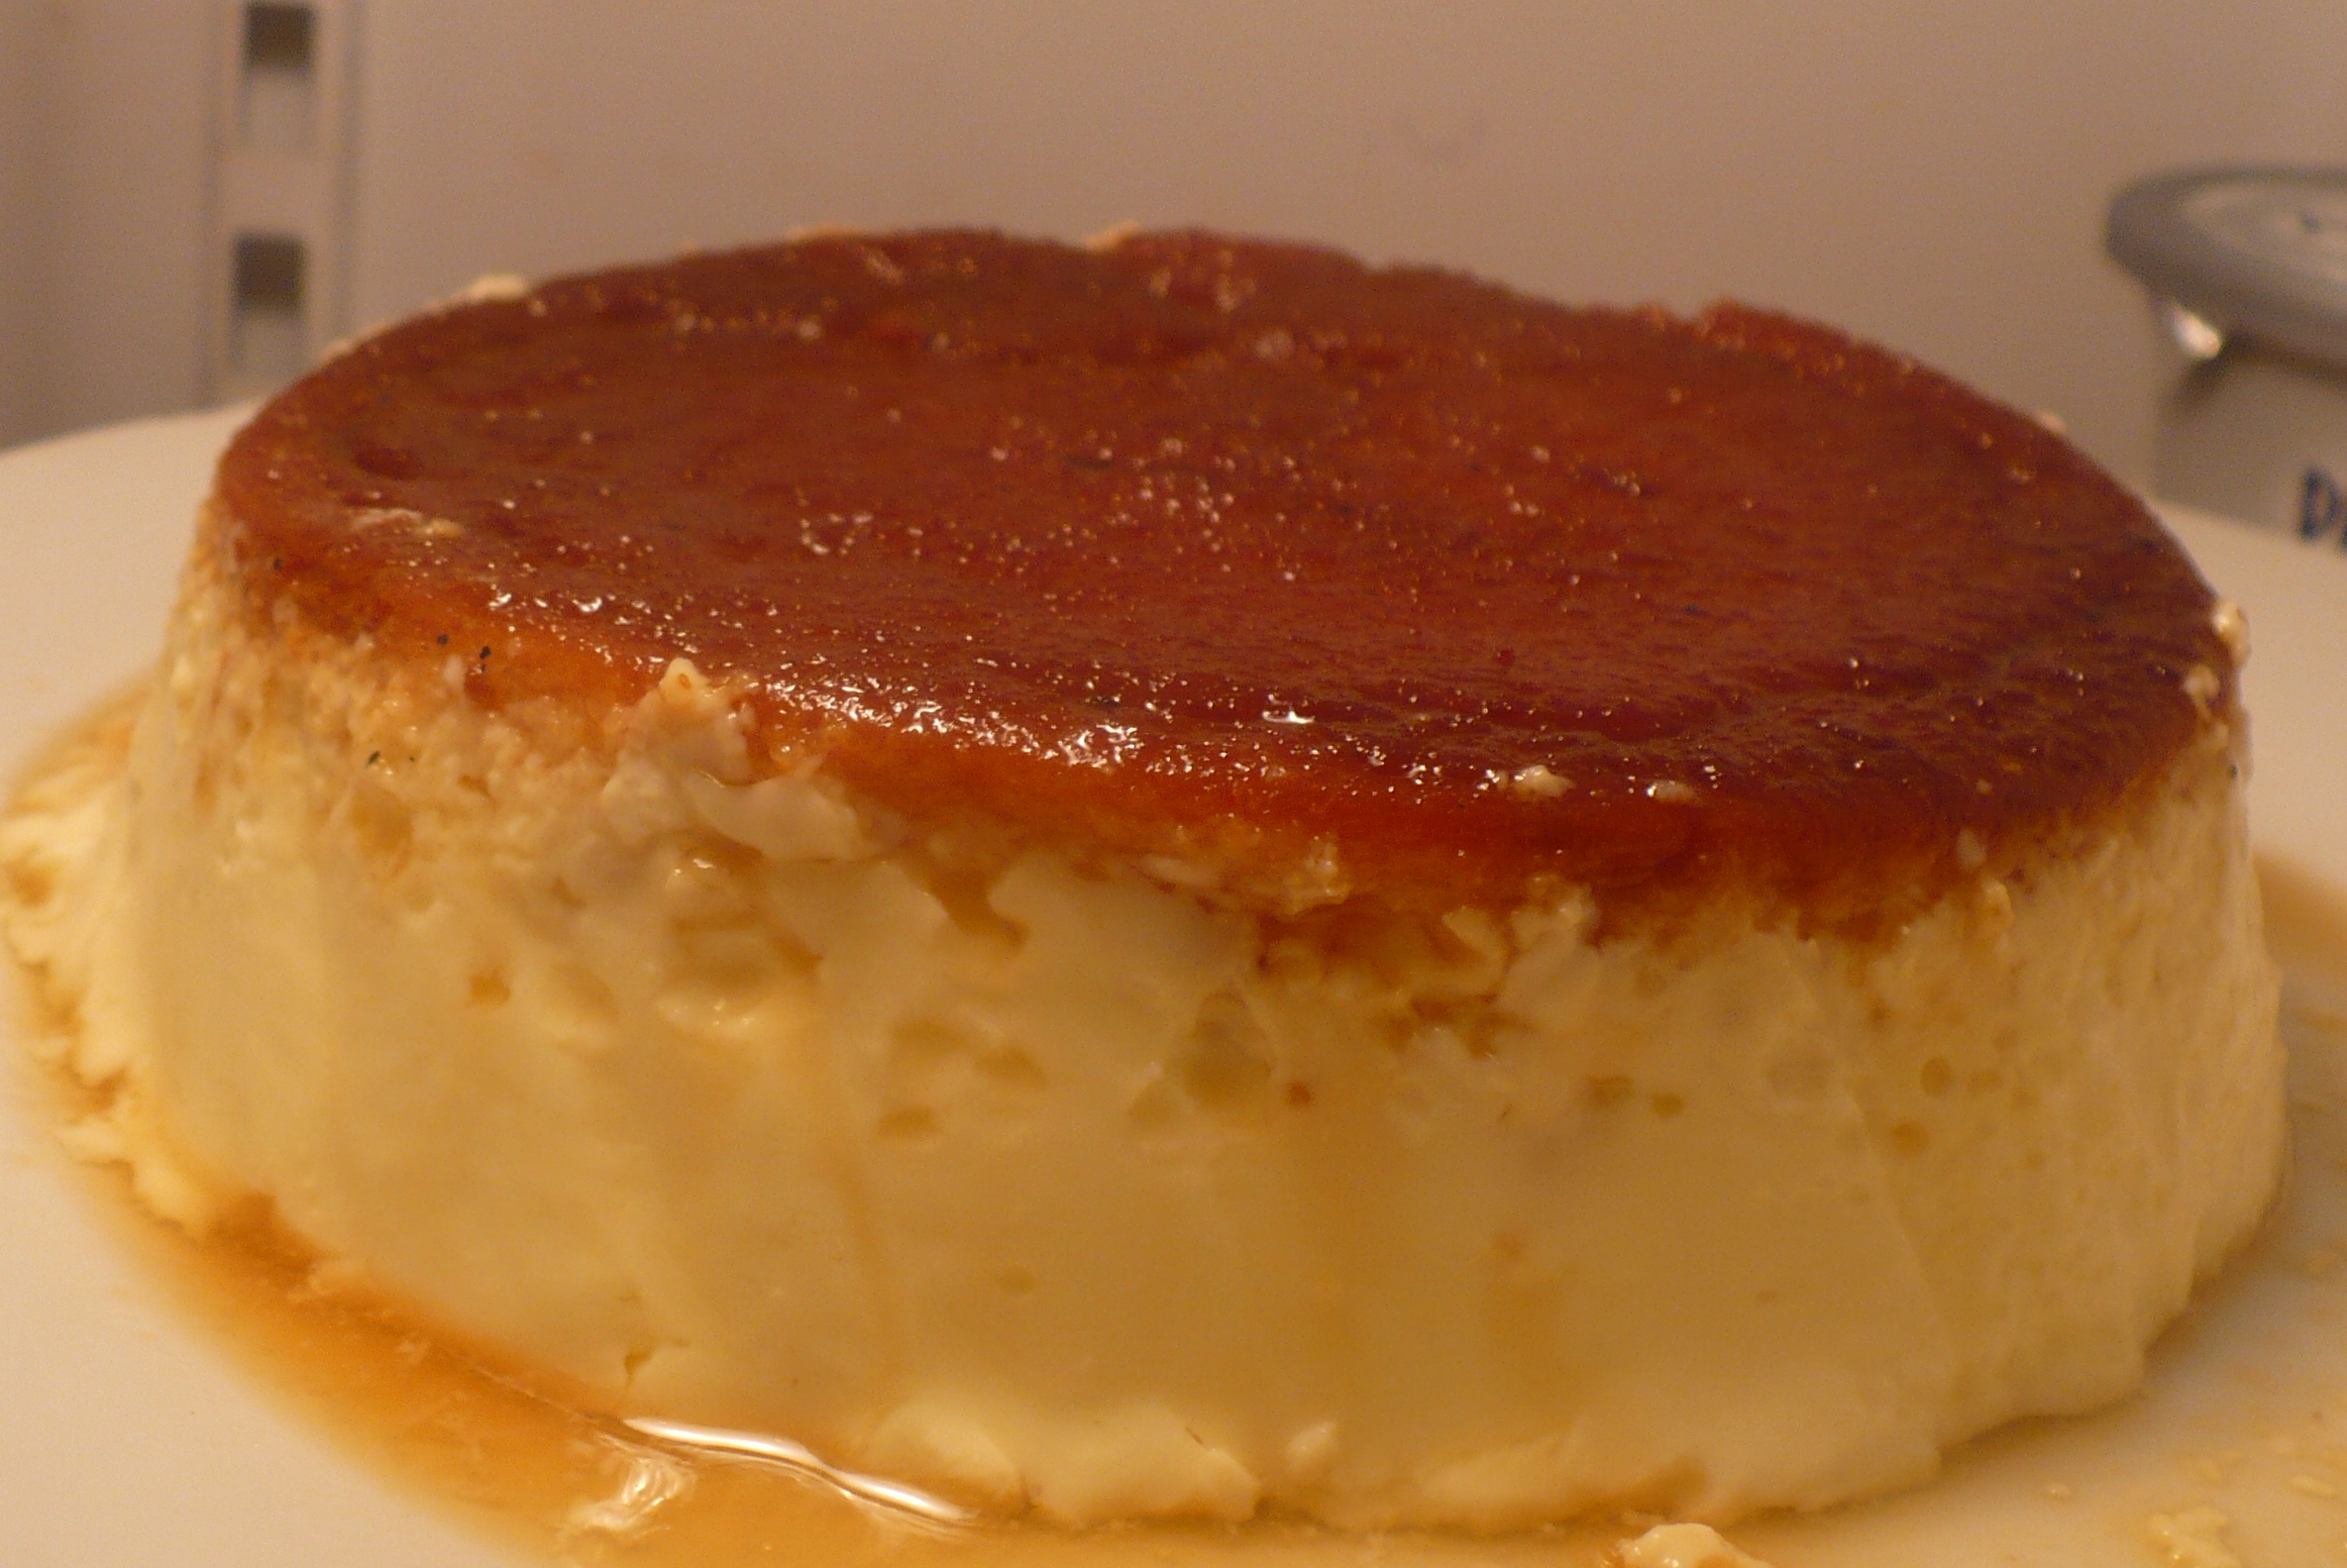 Pudding/ Cream caramel/ Flan | Khadiza's Kitchen